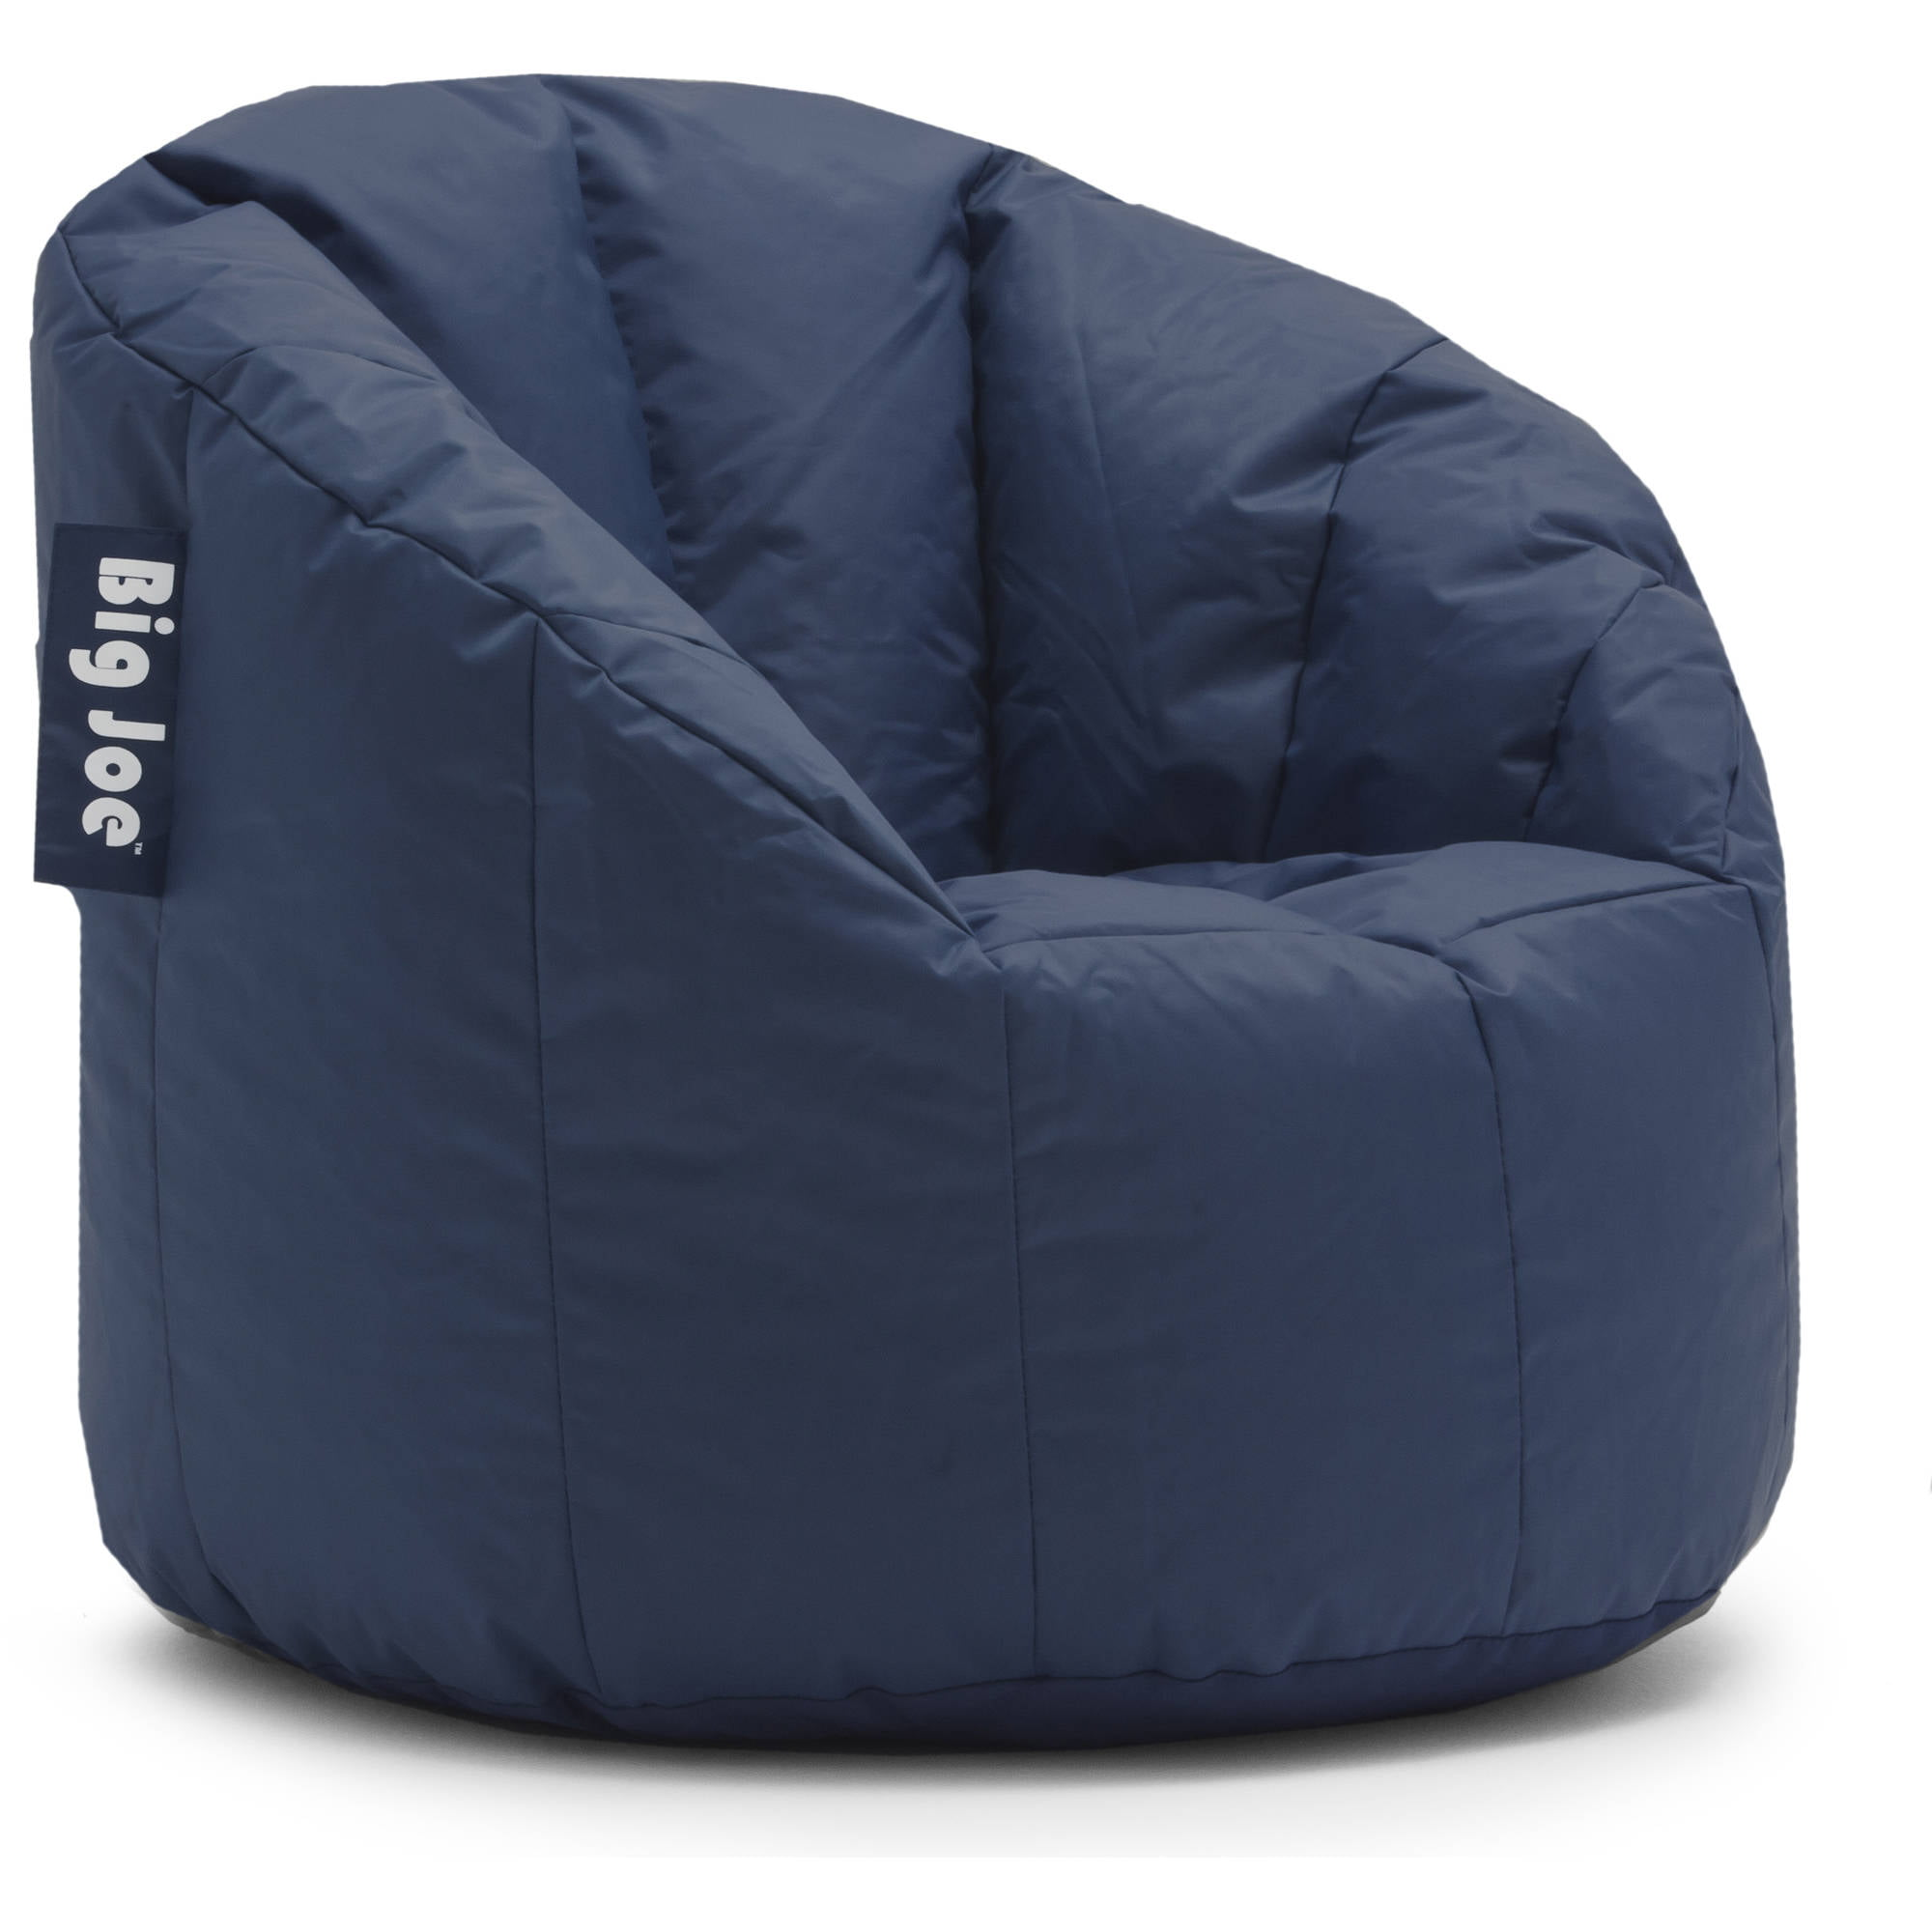 X Rocker 132 Round Extra Large Shiny Bean Bag Multiple Colors